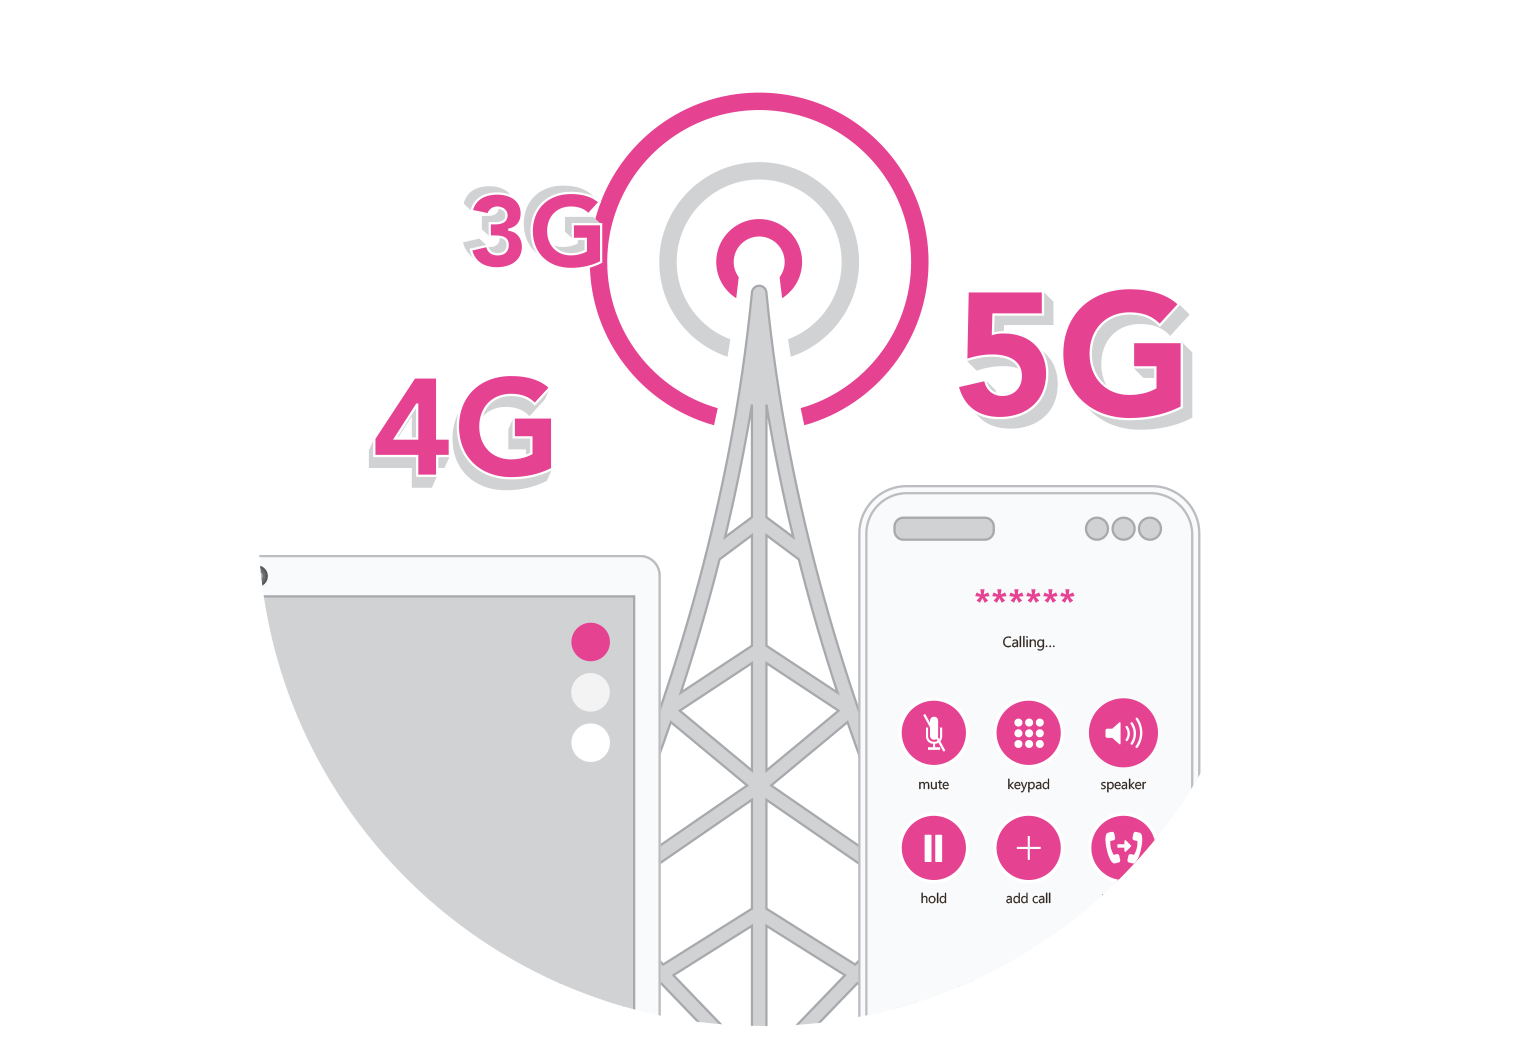 Government Proposed 5G Mast Regulations Change to Allow 30m High Cell Towers